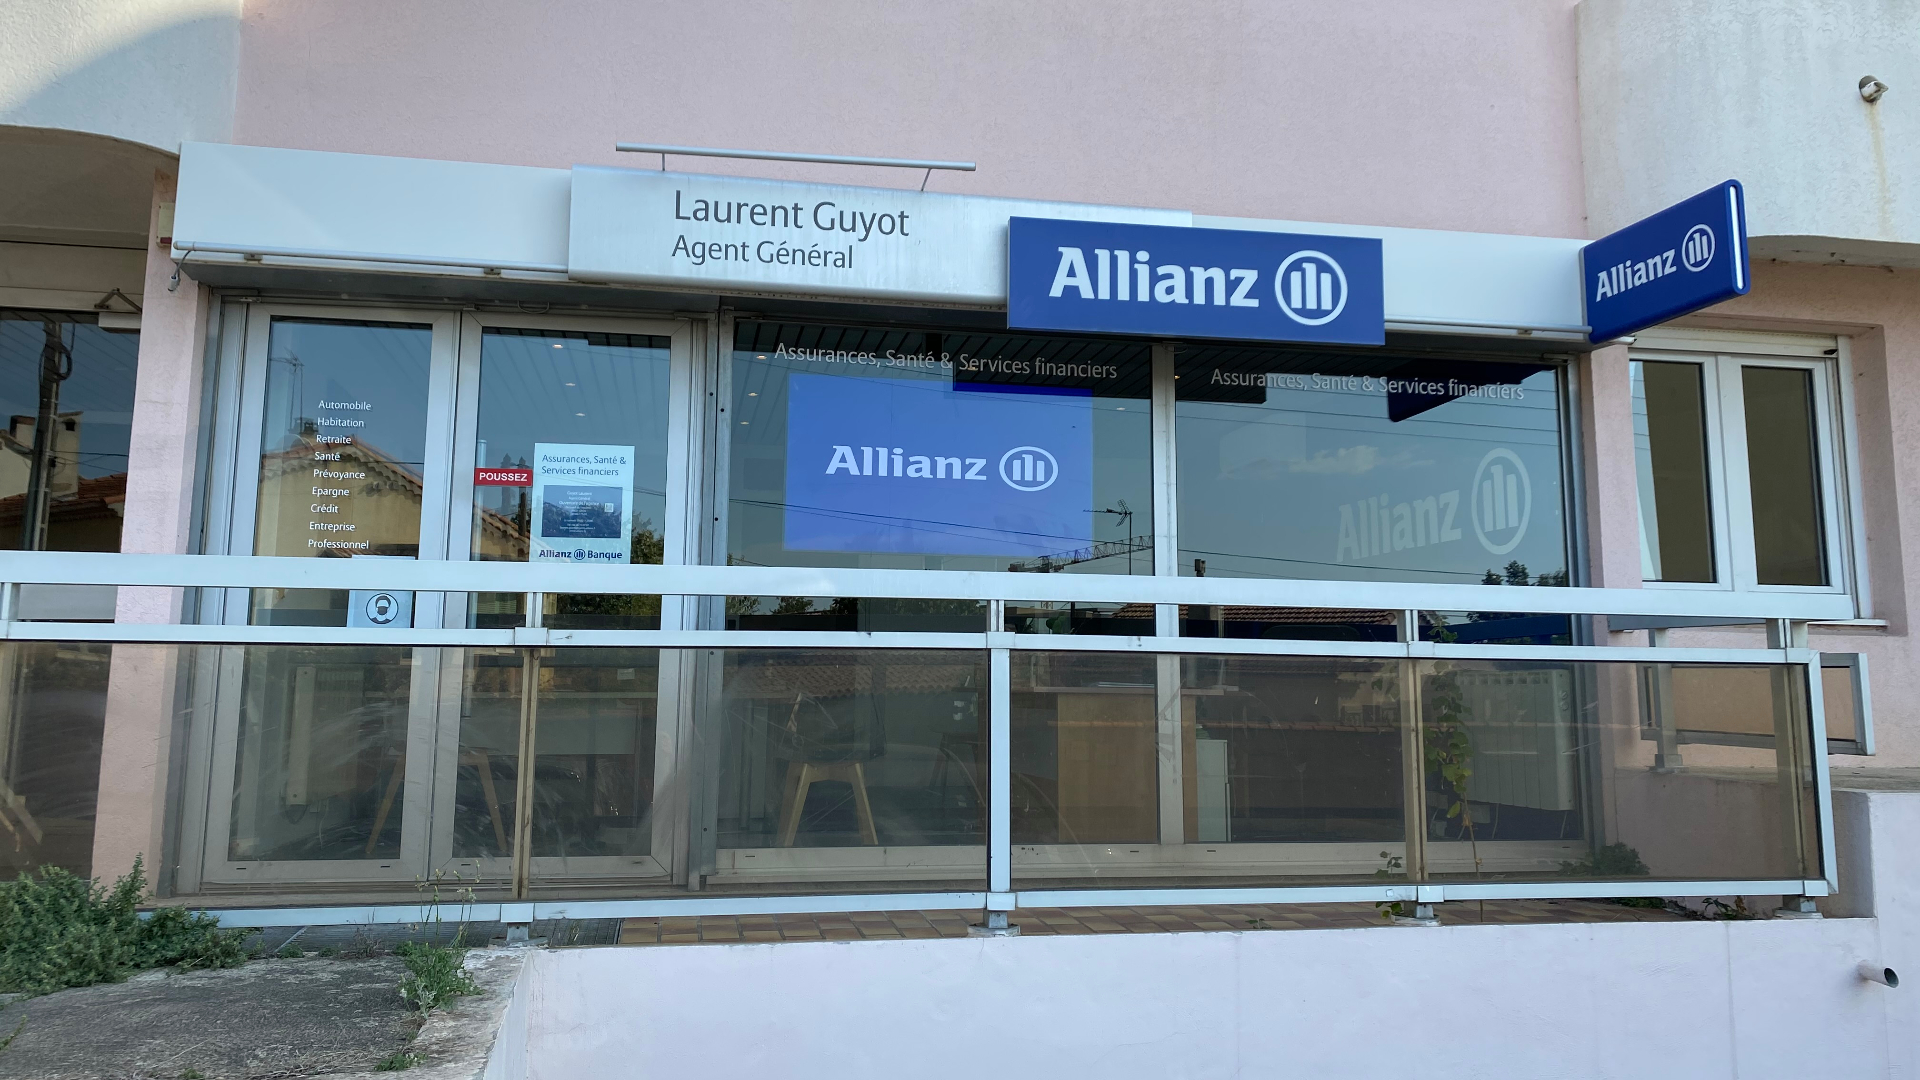 Allianz LES ANGLES - Laurent GUYOT